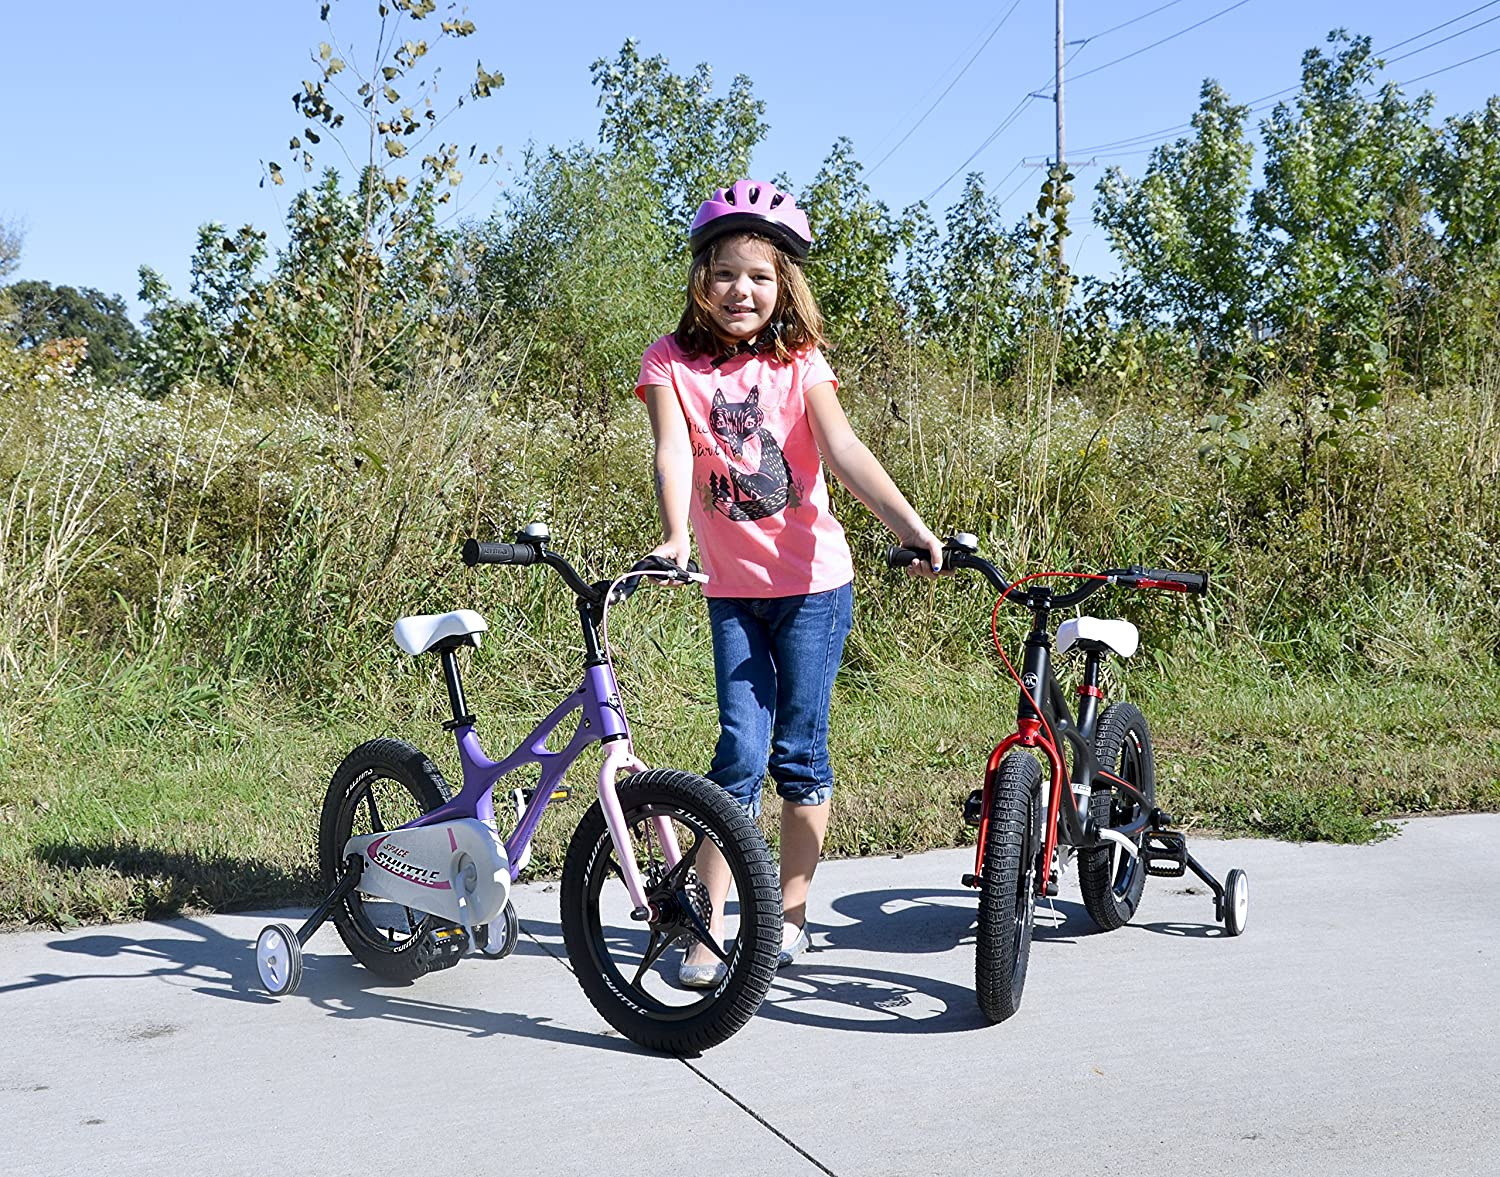 Purple and White RoyalBaby Space Shuttle Kid/'s Bike 2017 Newly-launched Available in Black Lightweight Magnesium Frame 16 inch with Training Wheels and Kickstand